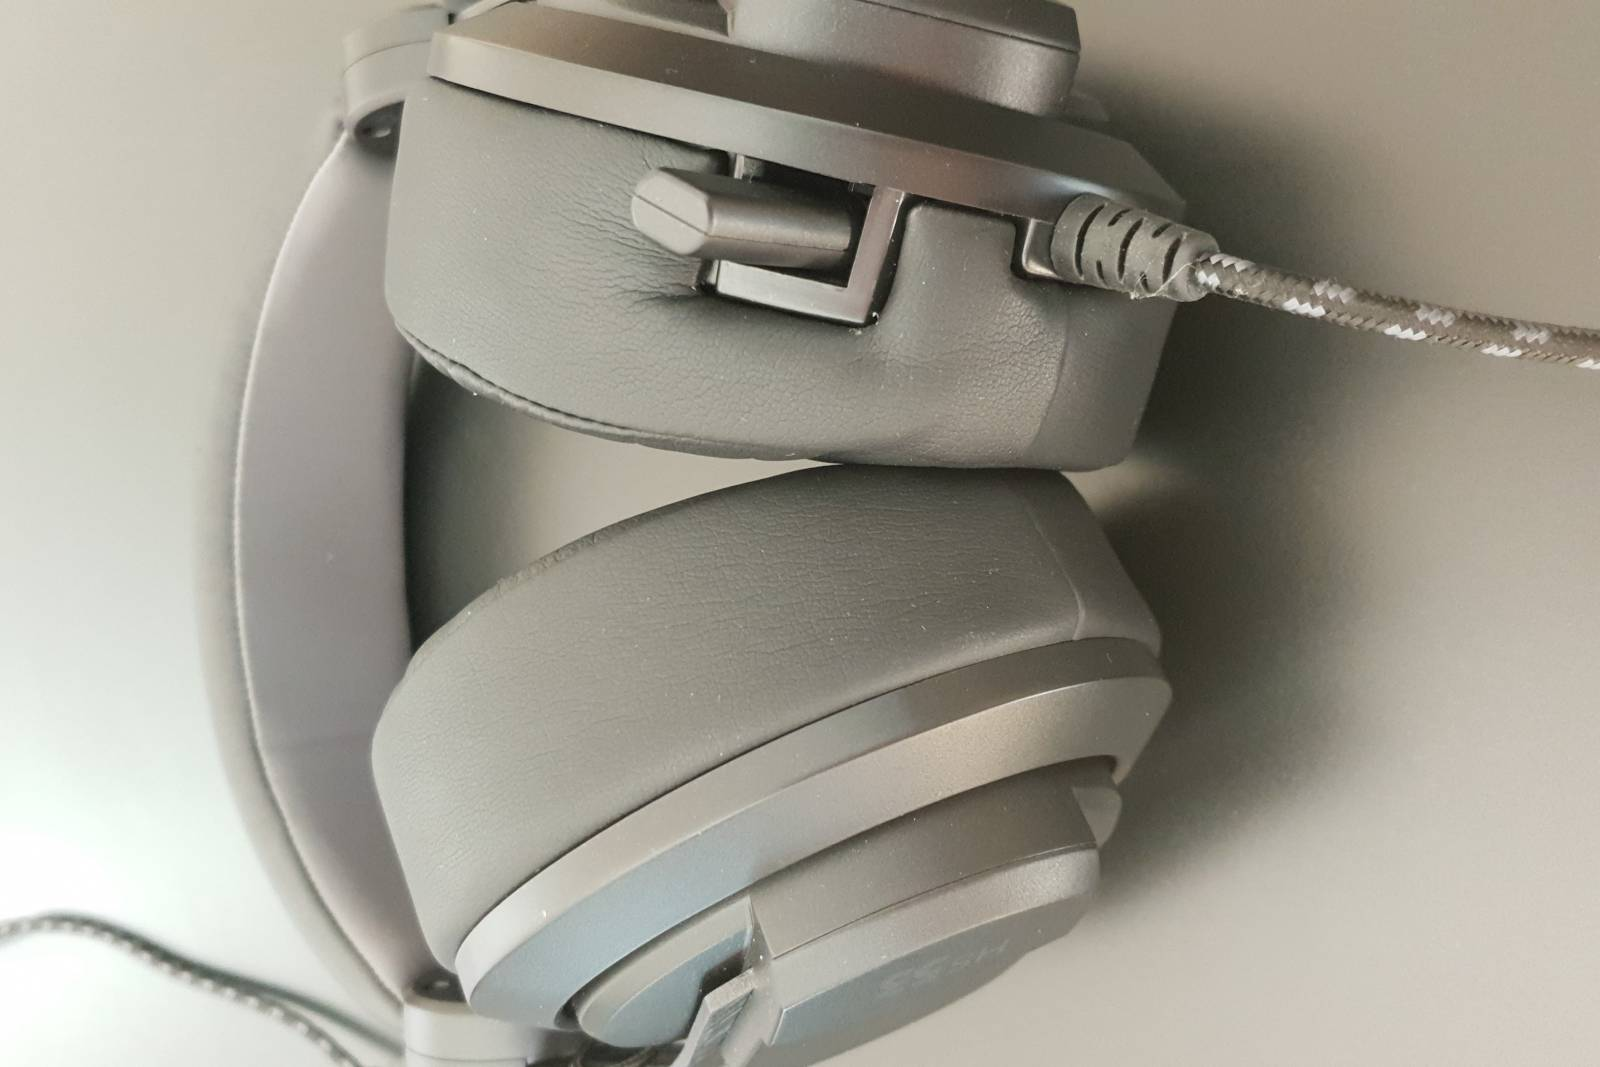 Image of my Hs53 Onyx performance gaming headset